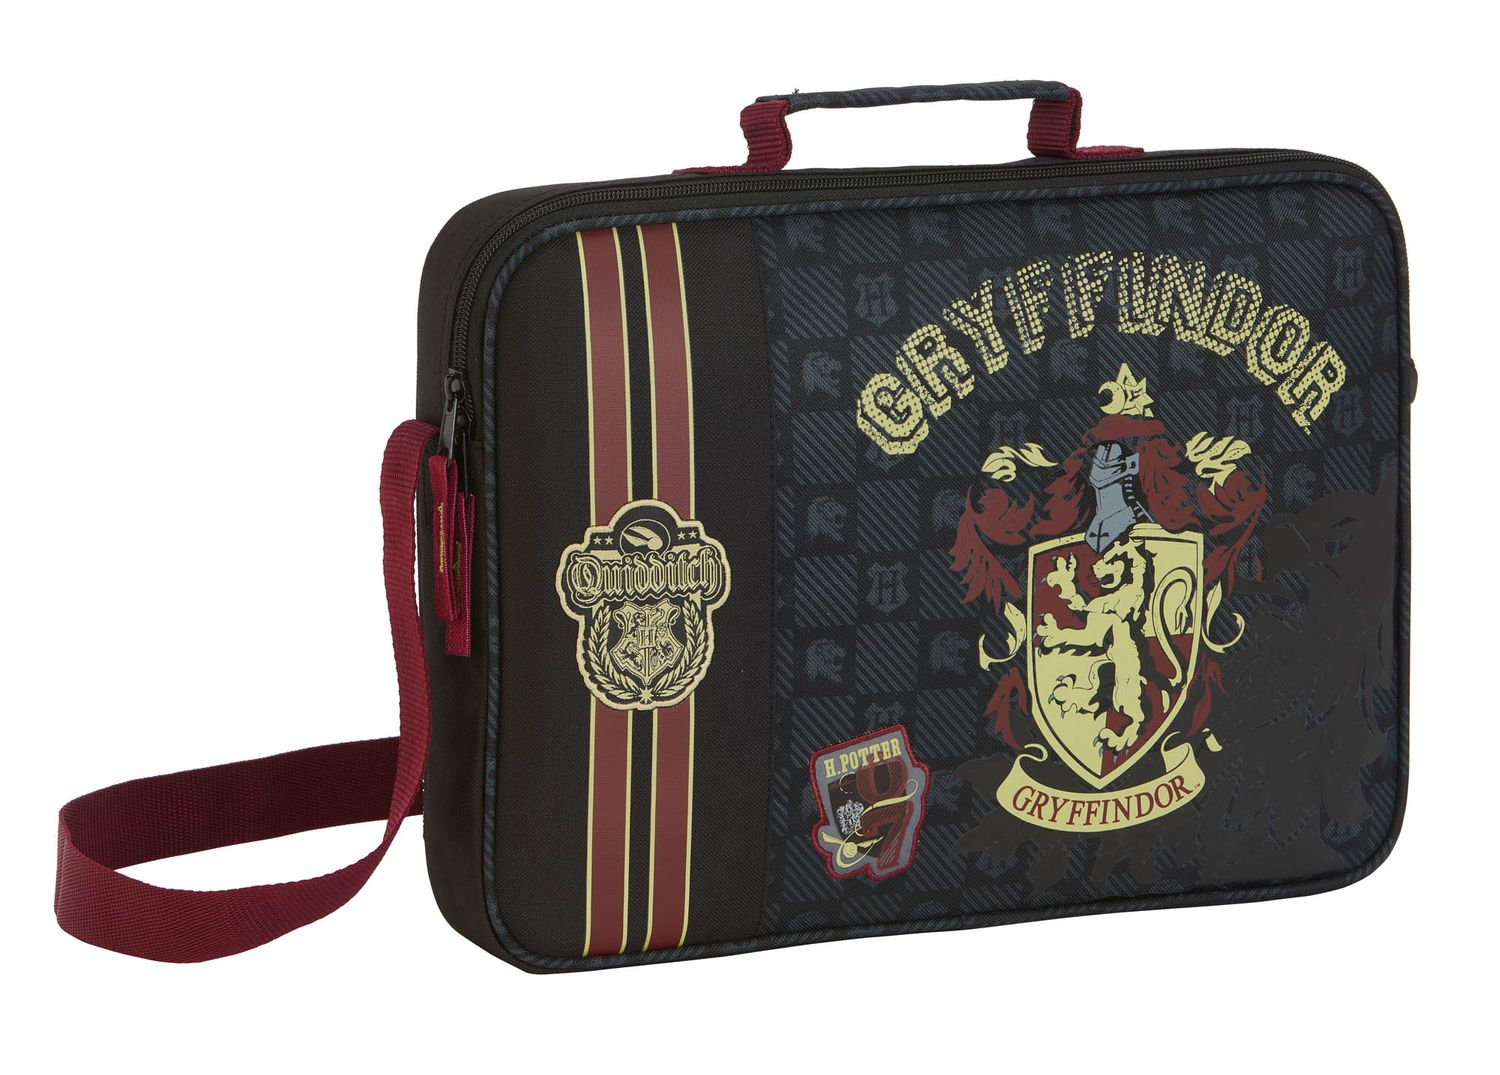 Harry Potter Messenger Bag 38cm – image 1